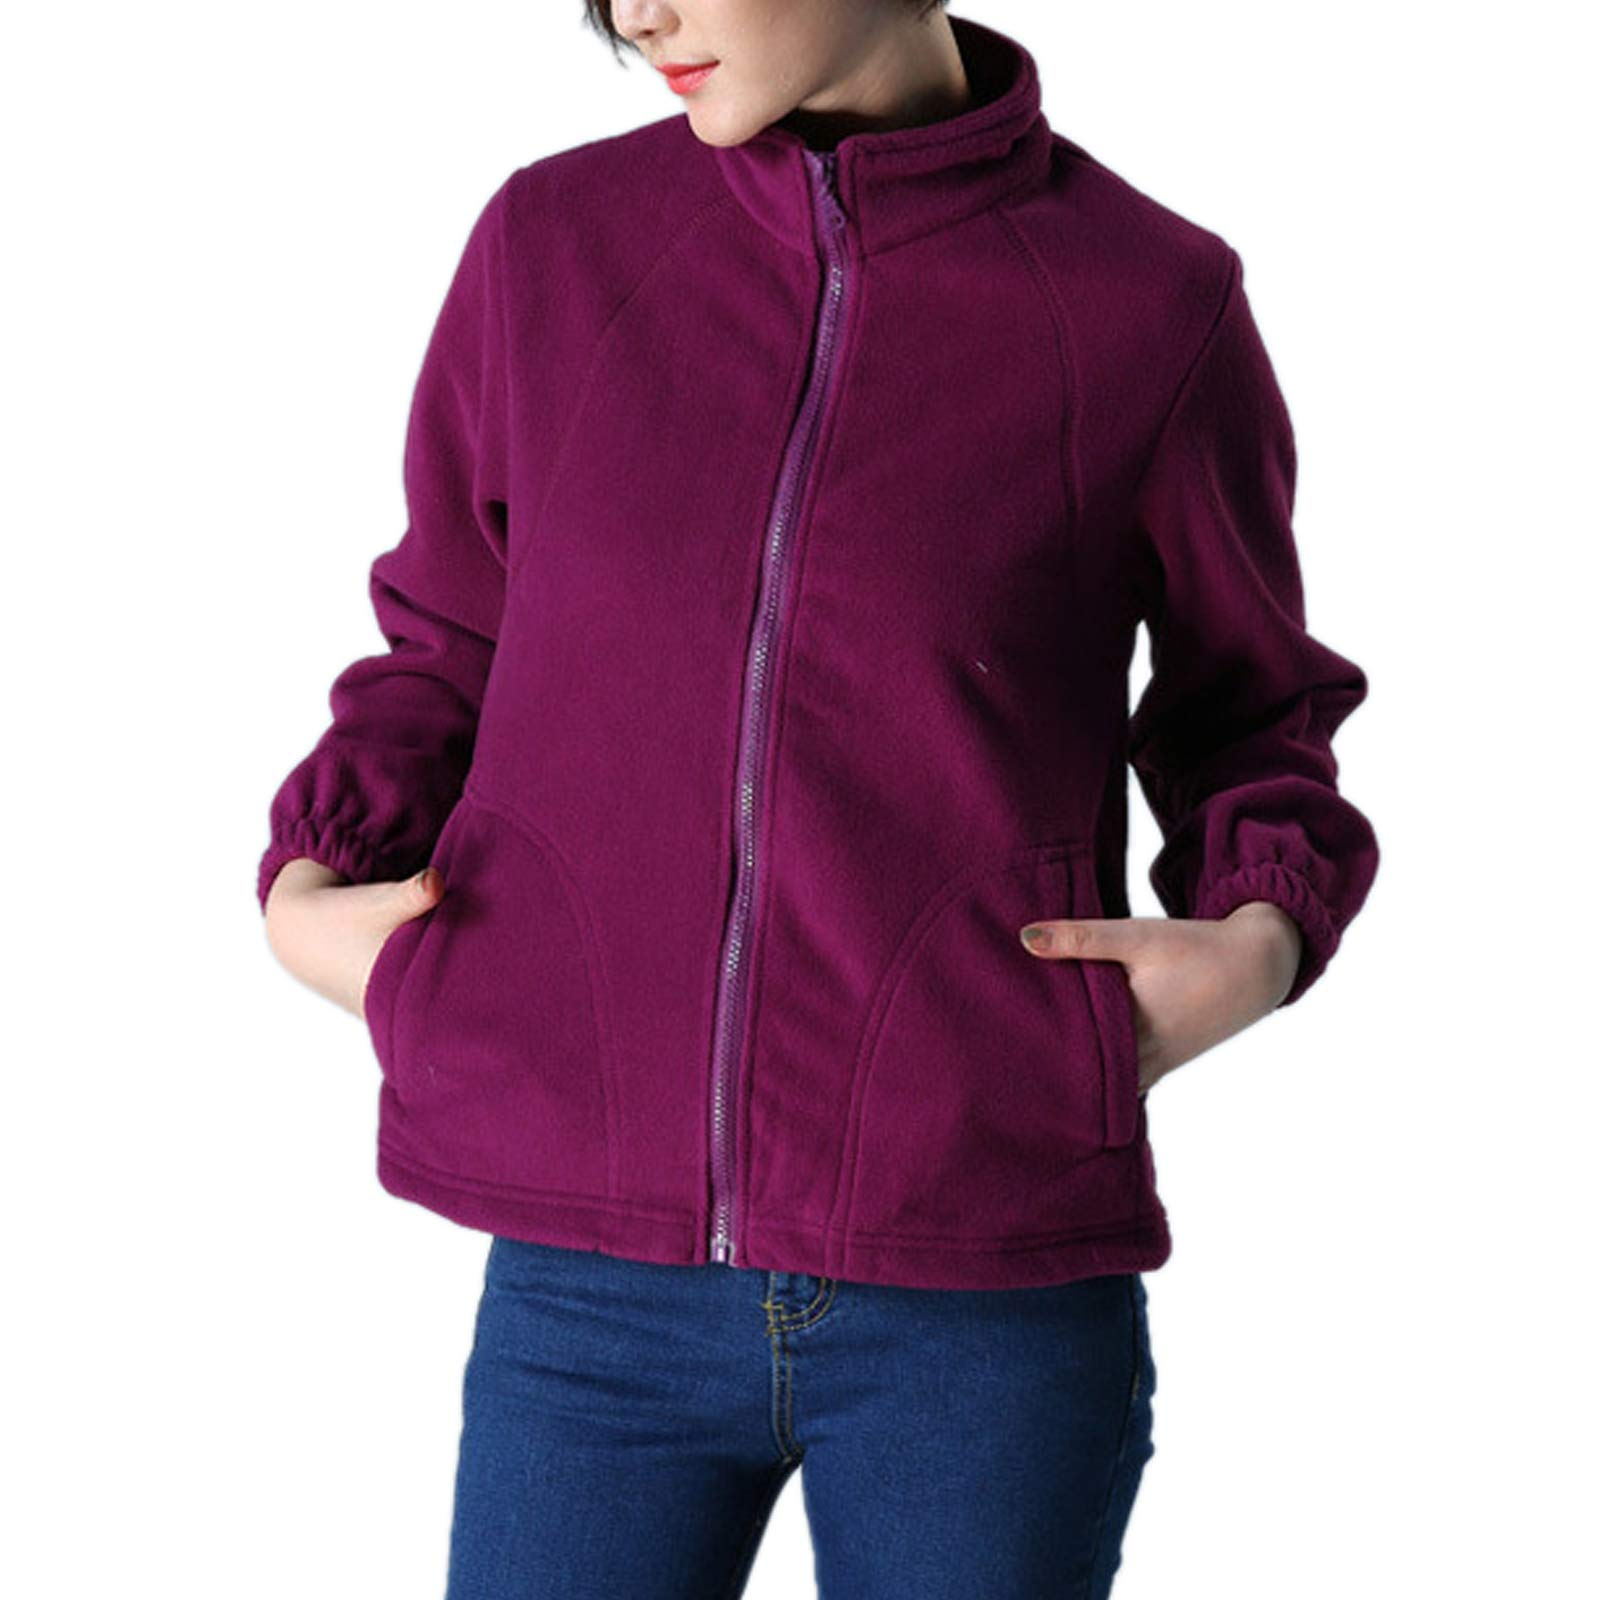 ZumZup Womens Fleece Jacket Full Zip Stand Collar Sportwear Top Outwear Fuchsia Bust 42.5''(Asie 2XL) by ZumZup